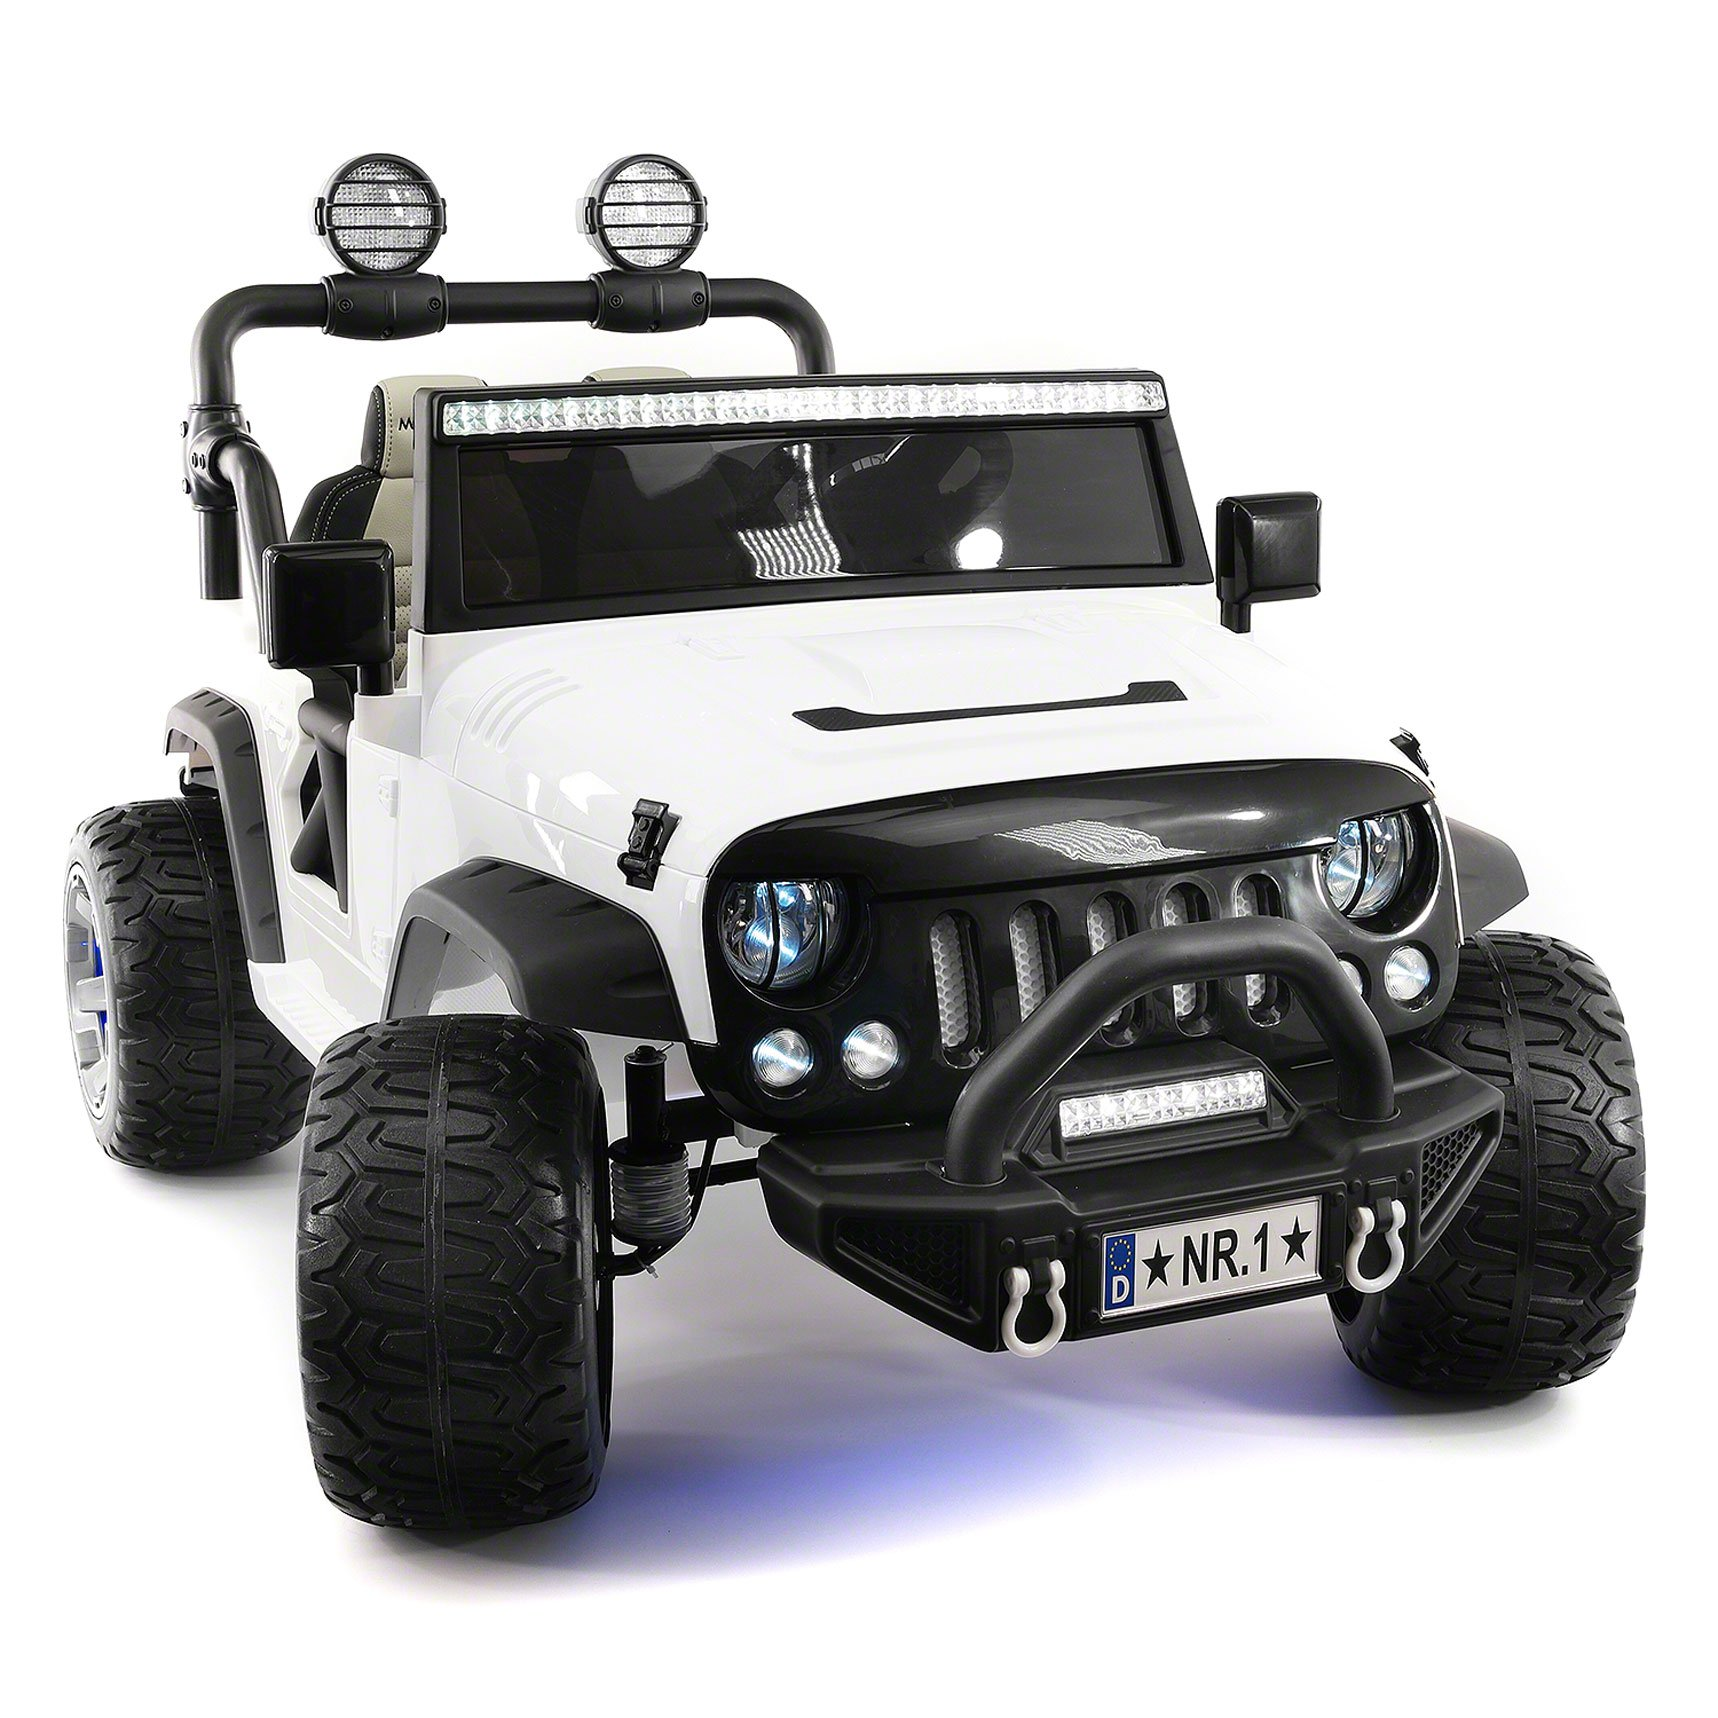 Explorer 2 (Two) Seater 12V Power Kids Ride-On Car Truck with R/C Parental Remote + EVA Rubber LED Wheels + Leather Seat + MP3 Music Player Bluetooth FM Radio + LED Lights (White) by Moderno Kids